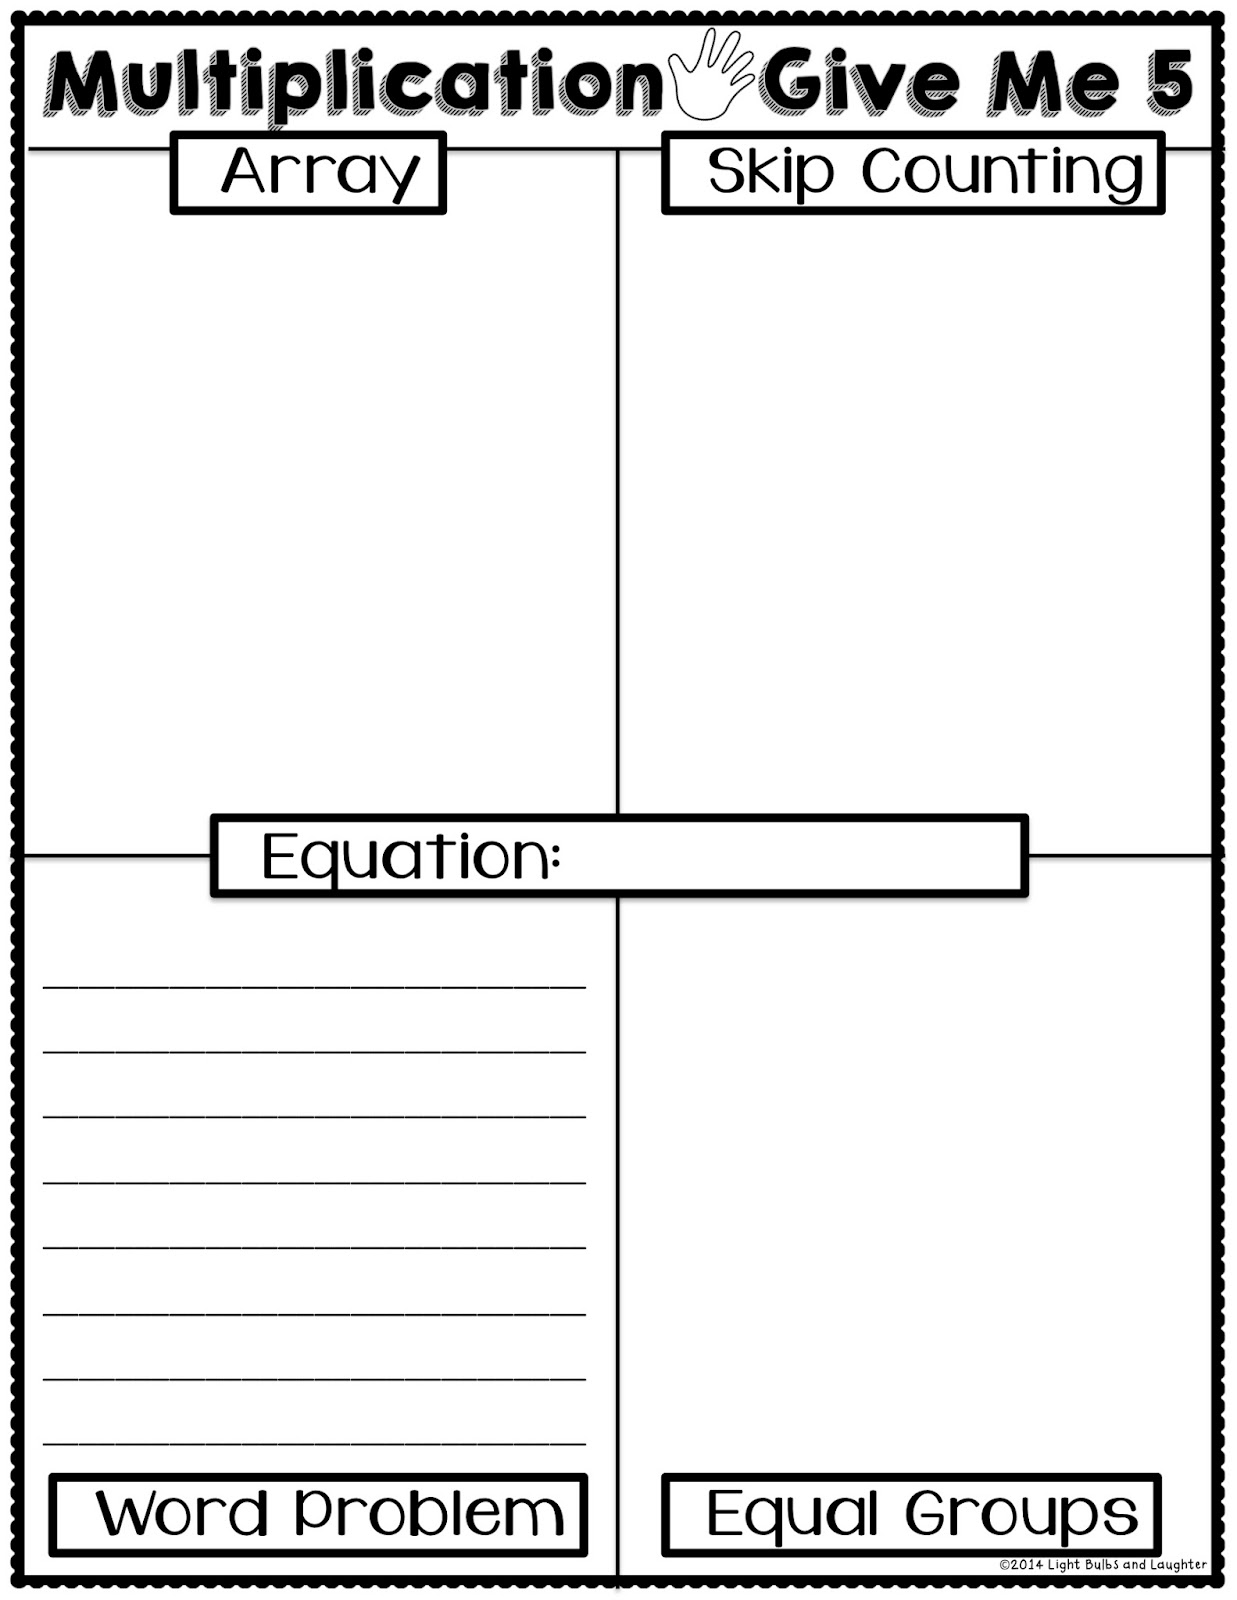 Multiplication With Arrays Worksheets add fraction worksheet add – Multiplication with Arrays Worksheets